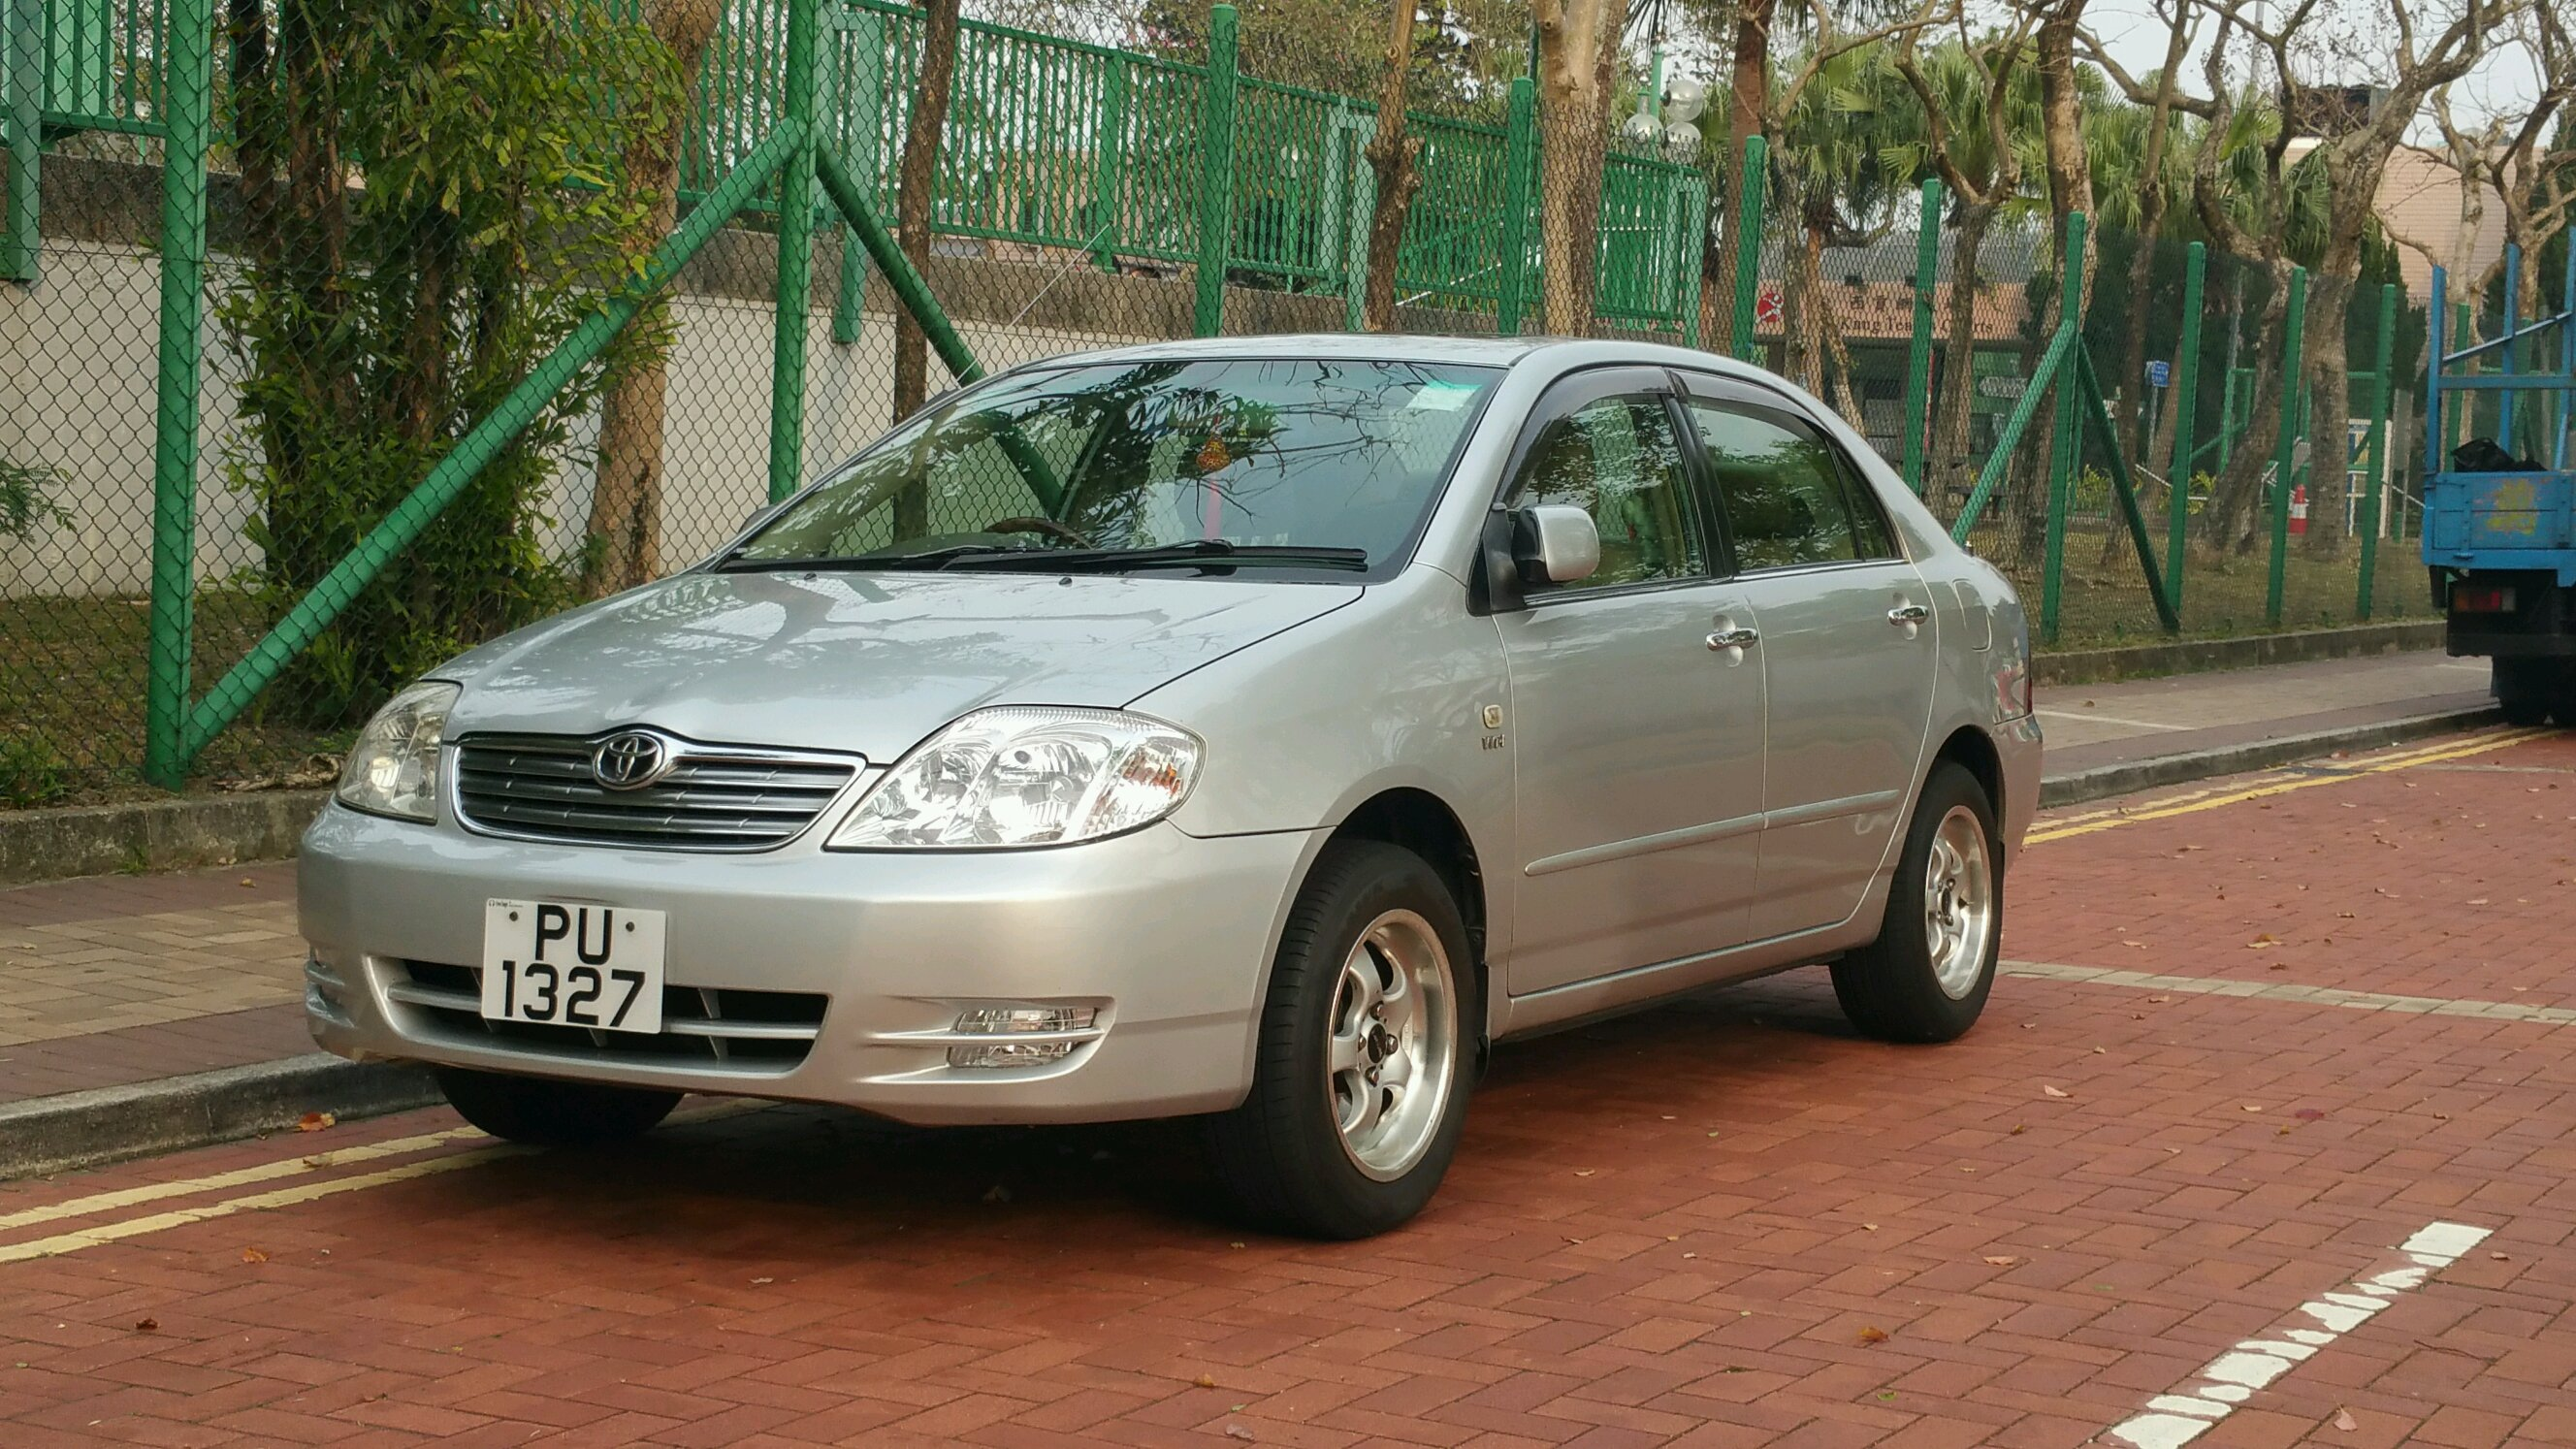 A Standard Toyota Corolla Sedan That Has Been Lifted And Put On